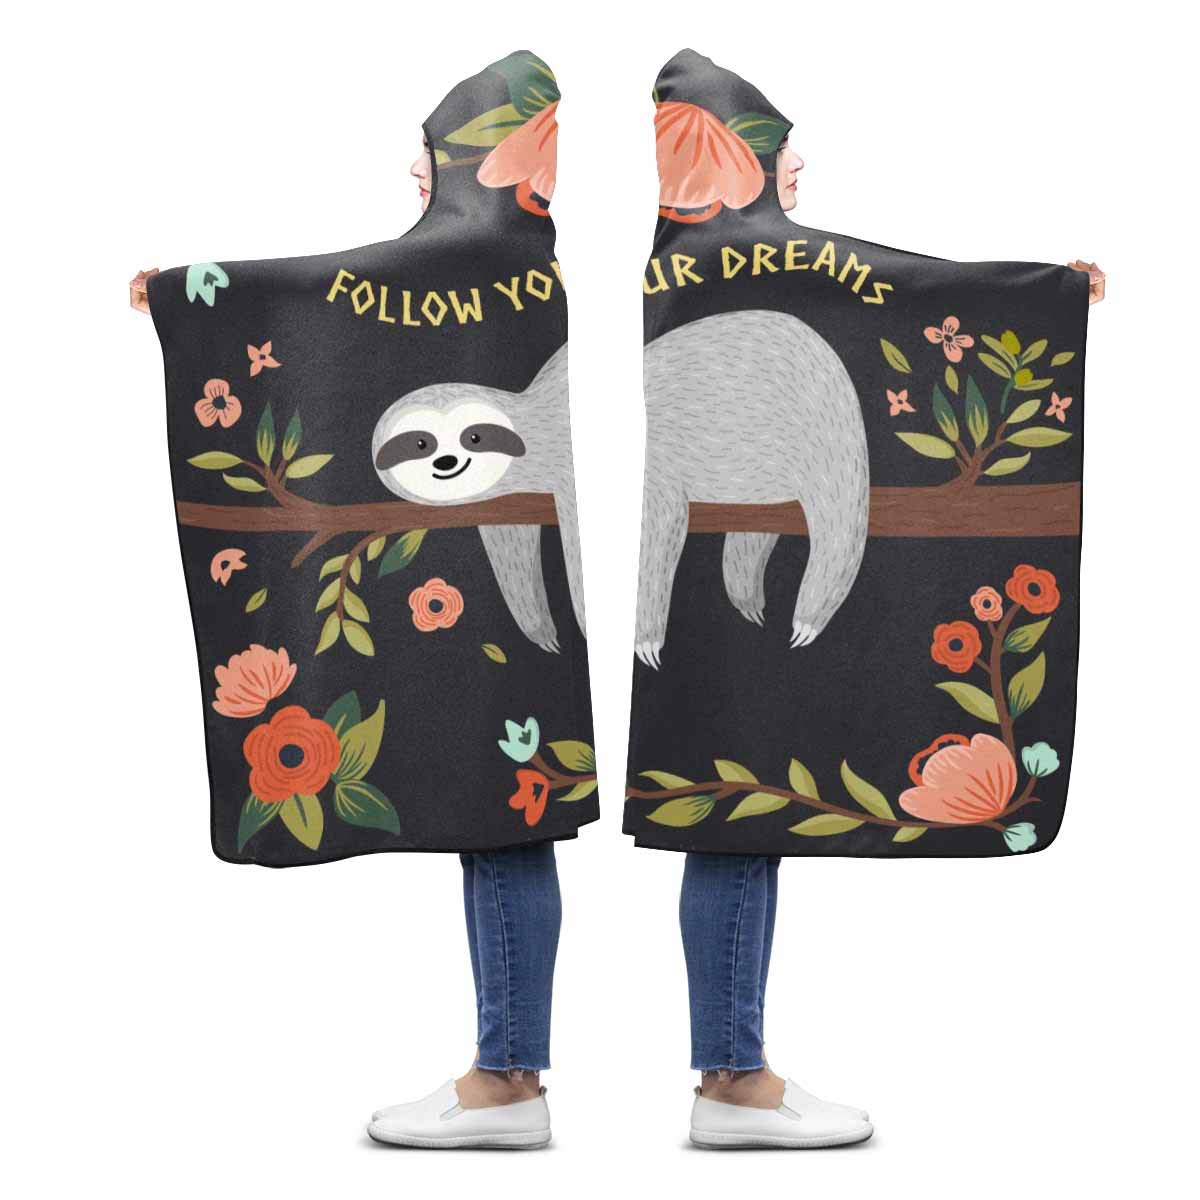 INTERESTPRINT Cute Sloth Flower Wearable Hooded Blanket 80 x 56 inches Adults Blankets Throw Wrap